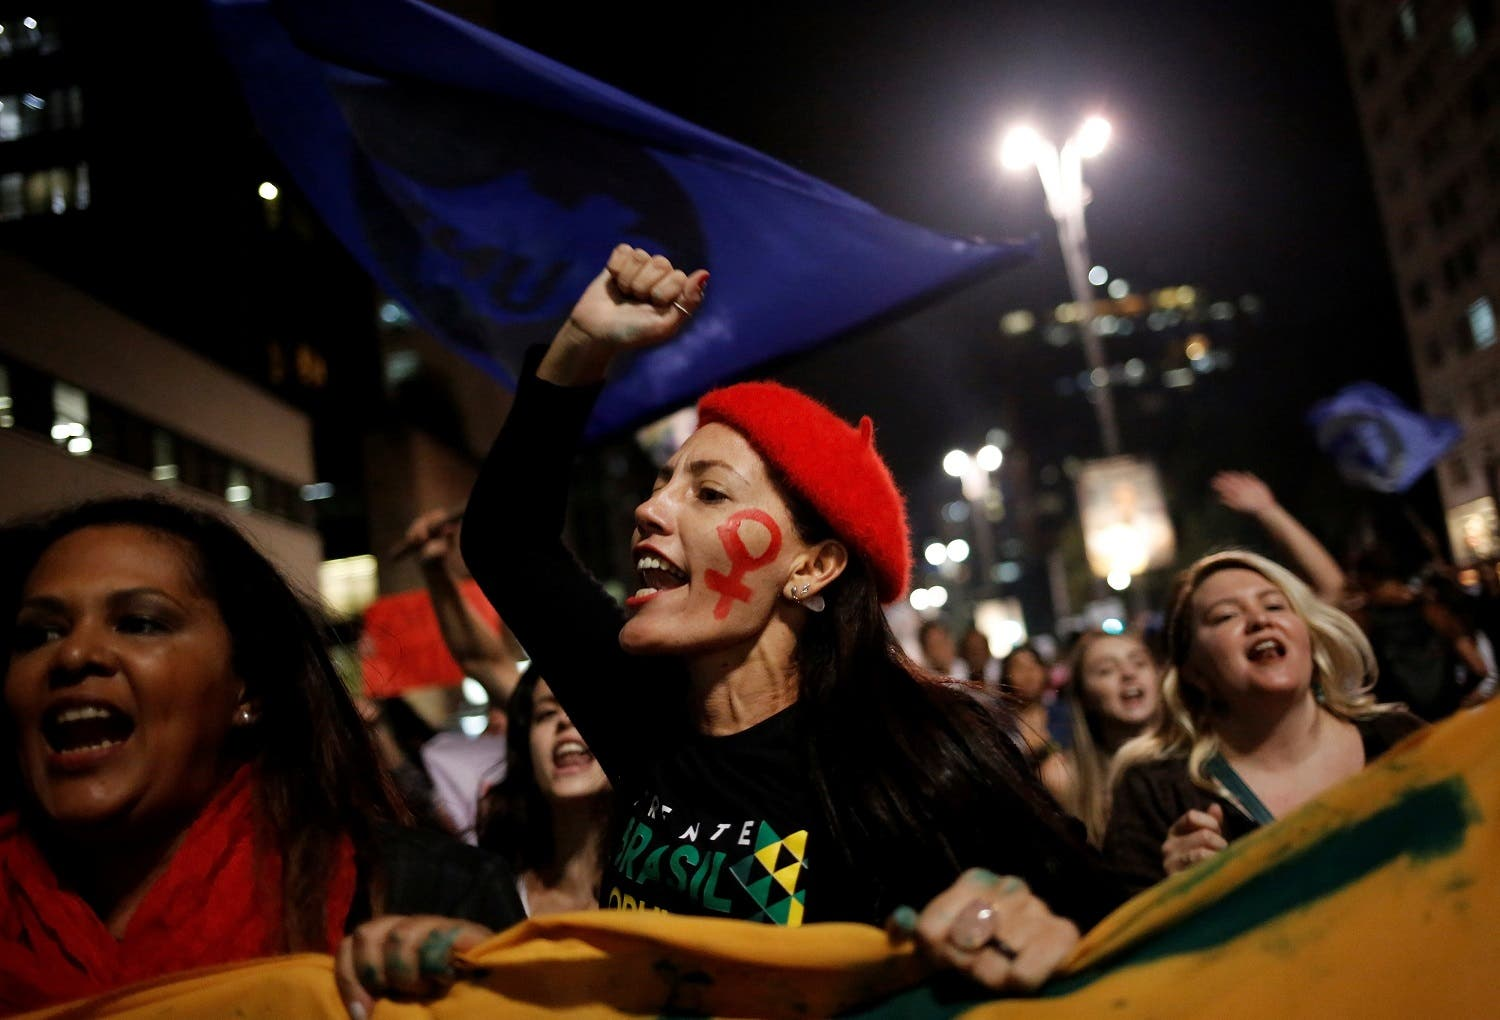 Women shout slogans during a protest against Brazil's interim President Michel Temer and in support of suspended President Dilma Rousseff at Paulista Avenue in Sao Paulo. (Reuters)